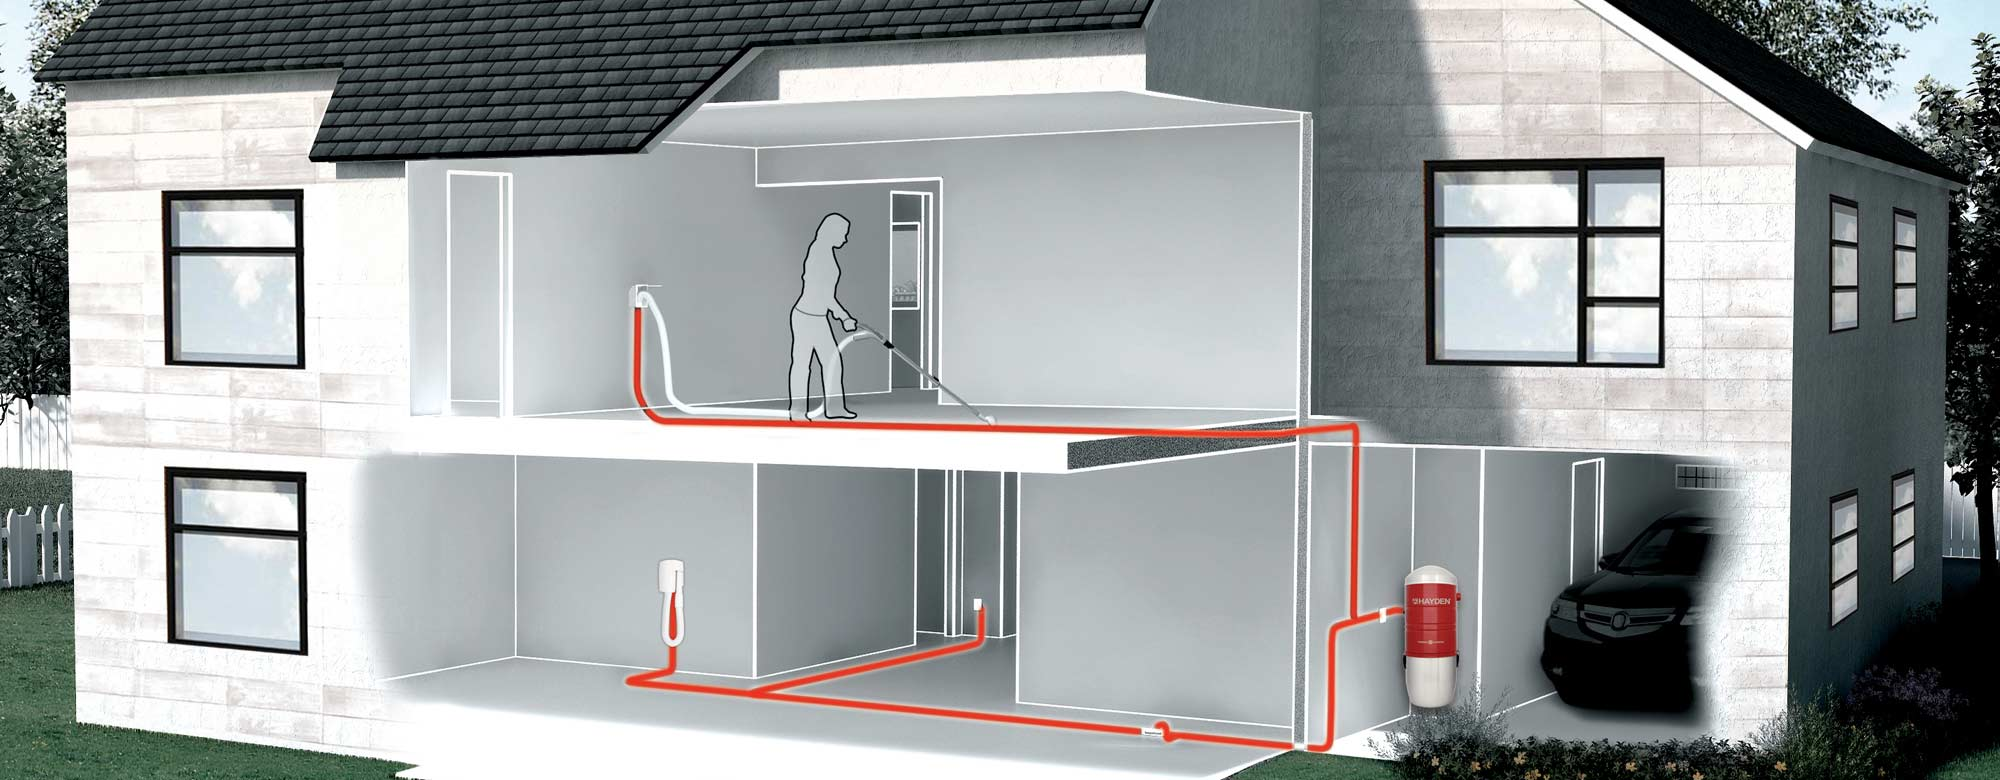 schema of the network of a central vacuum system installation in a house